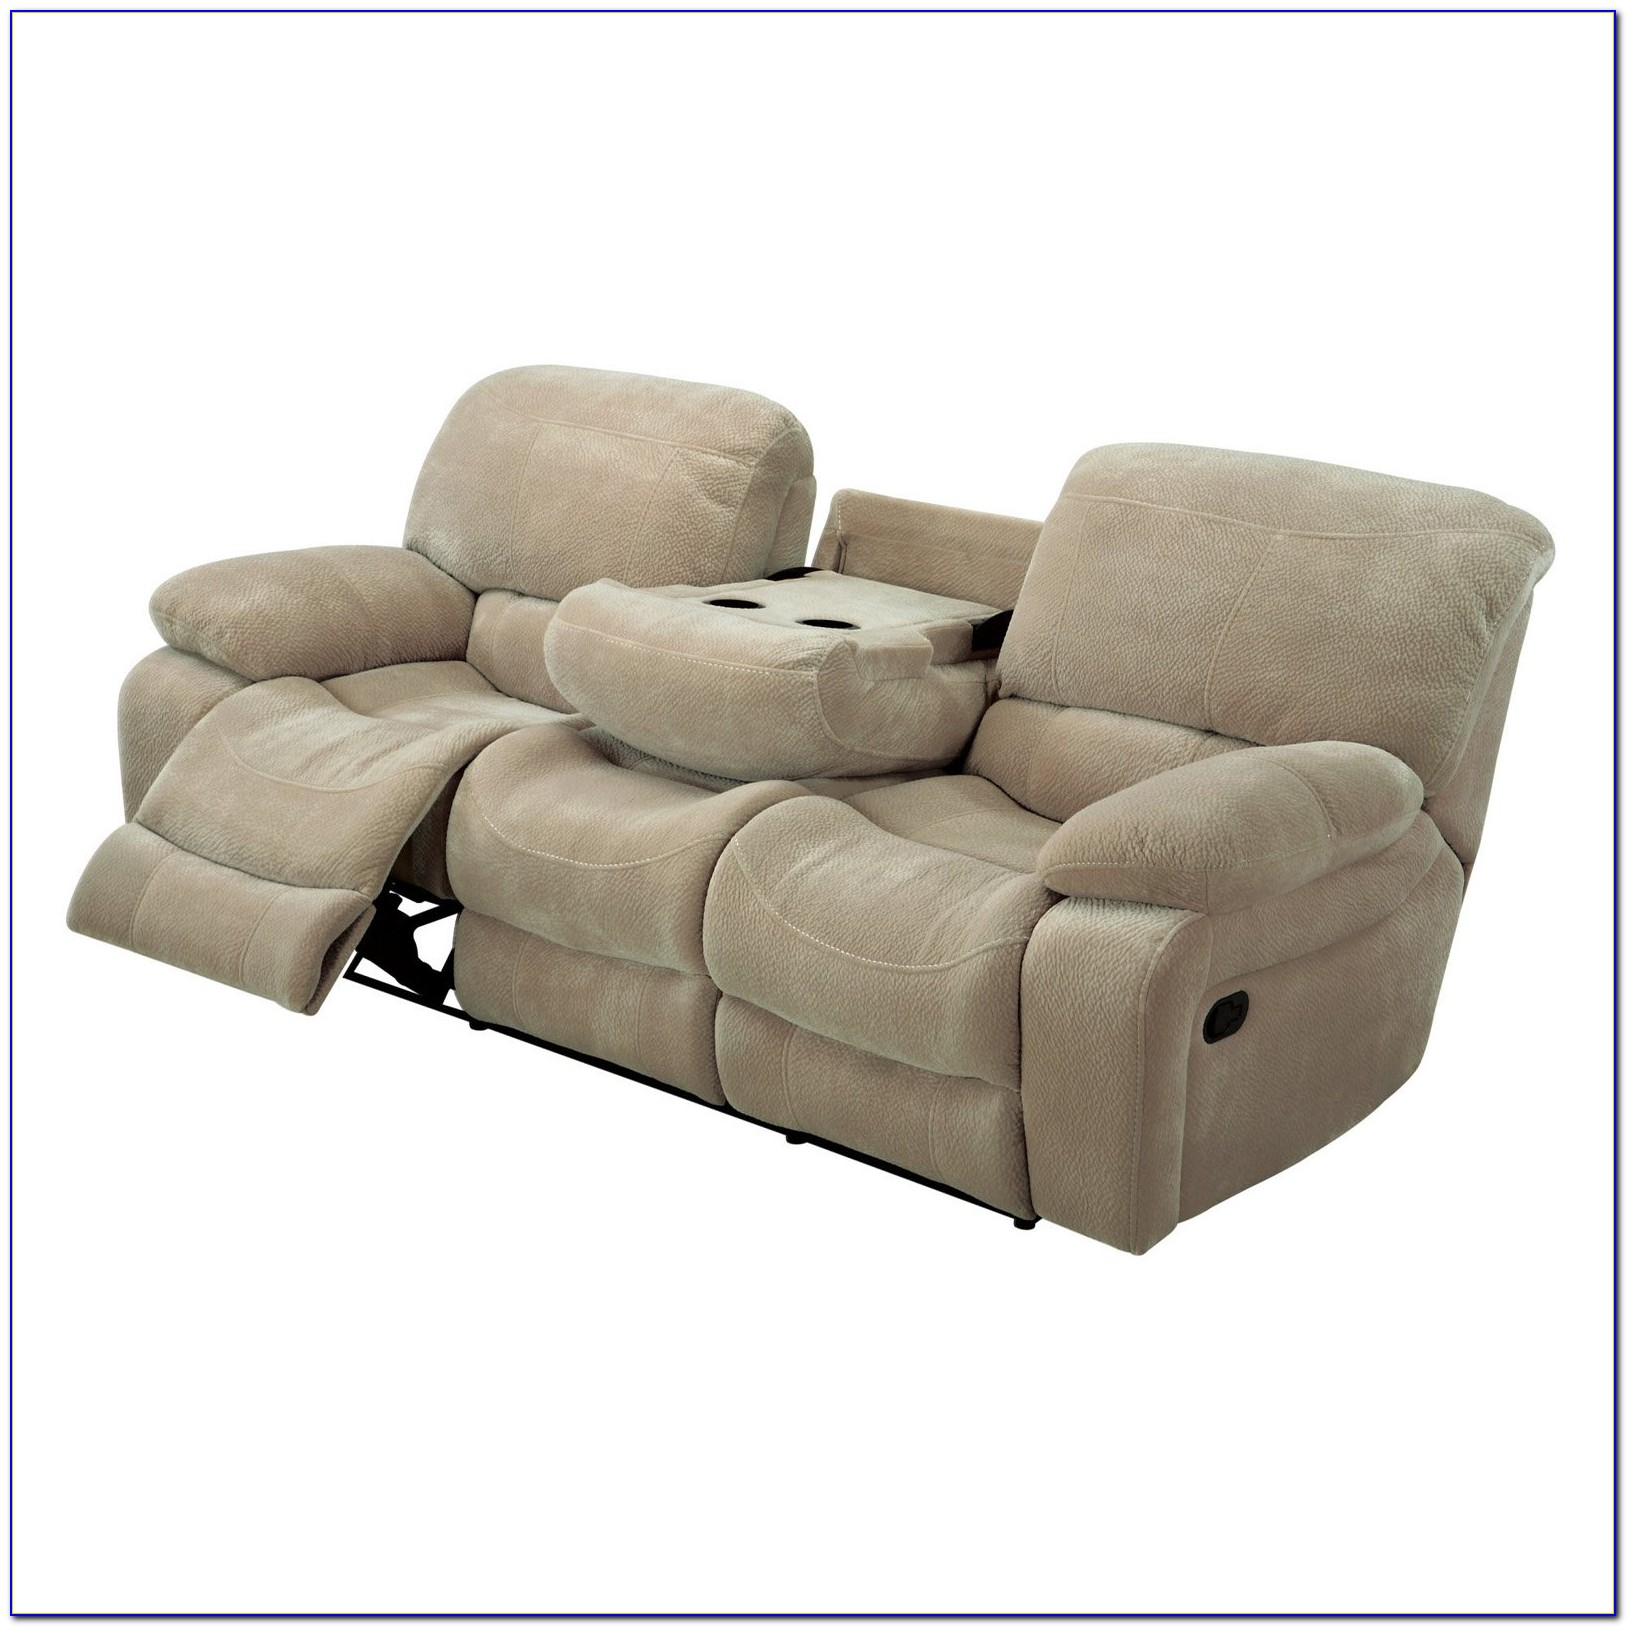 Reclining Sofa With Drop Down Table And Massage